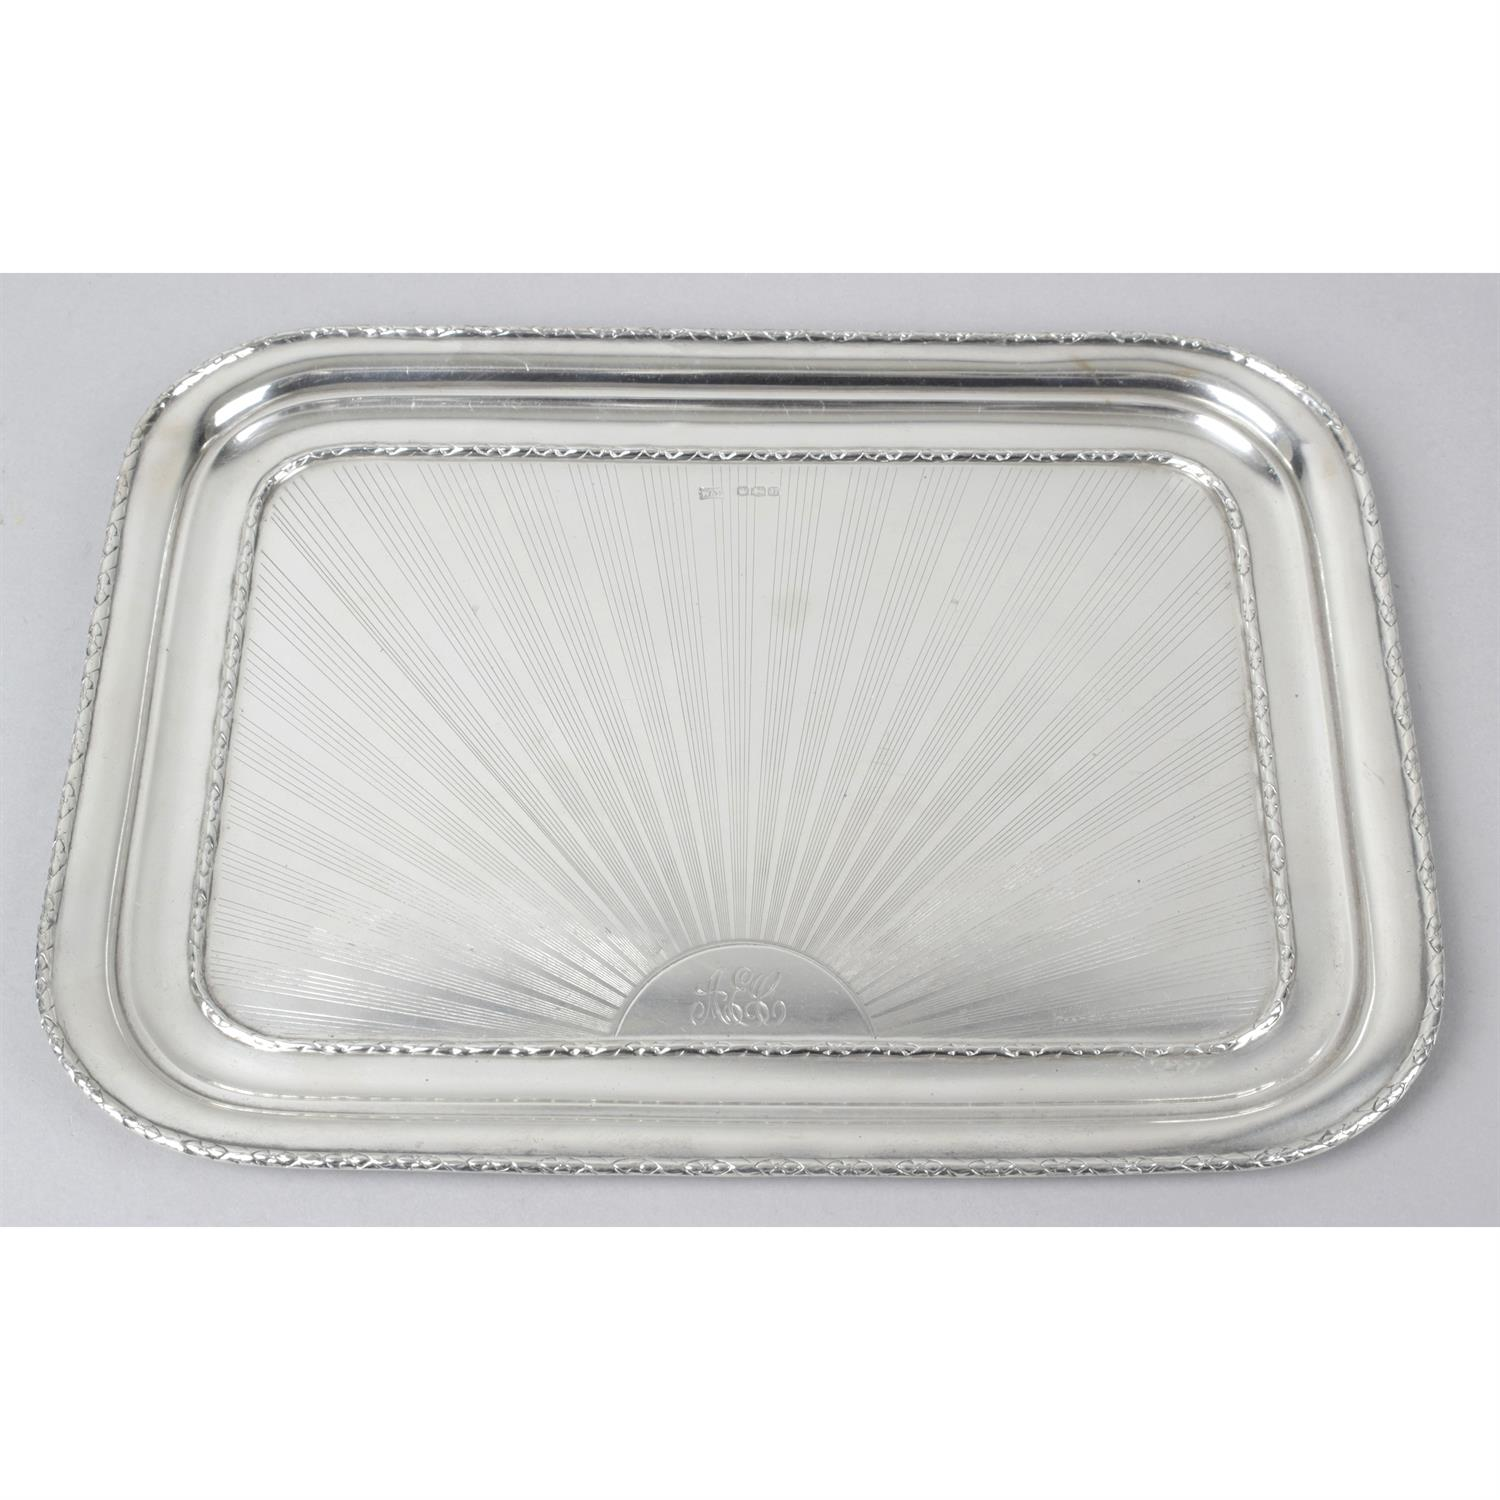 A George V silver dressing table tray.